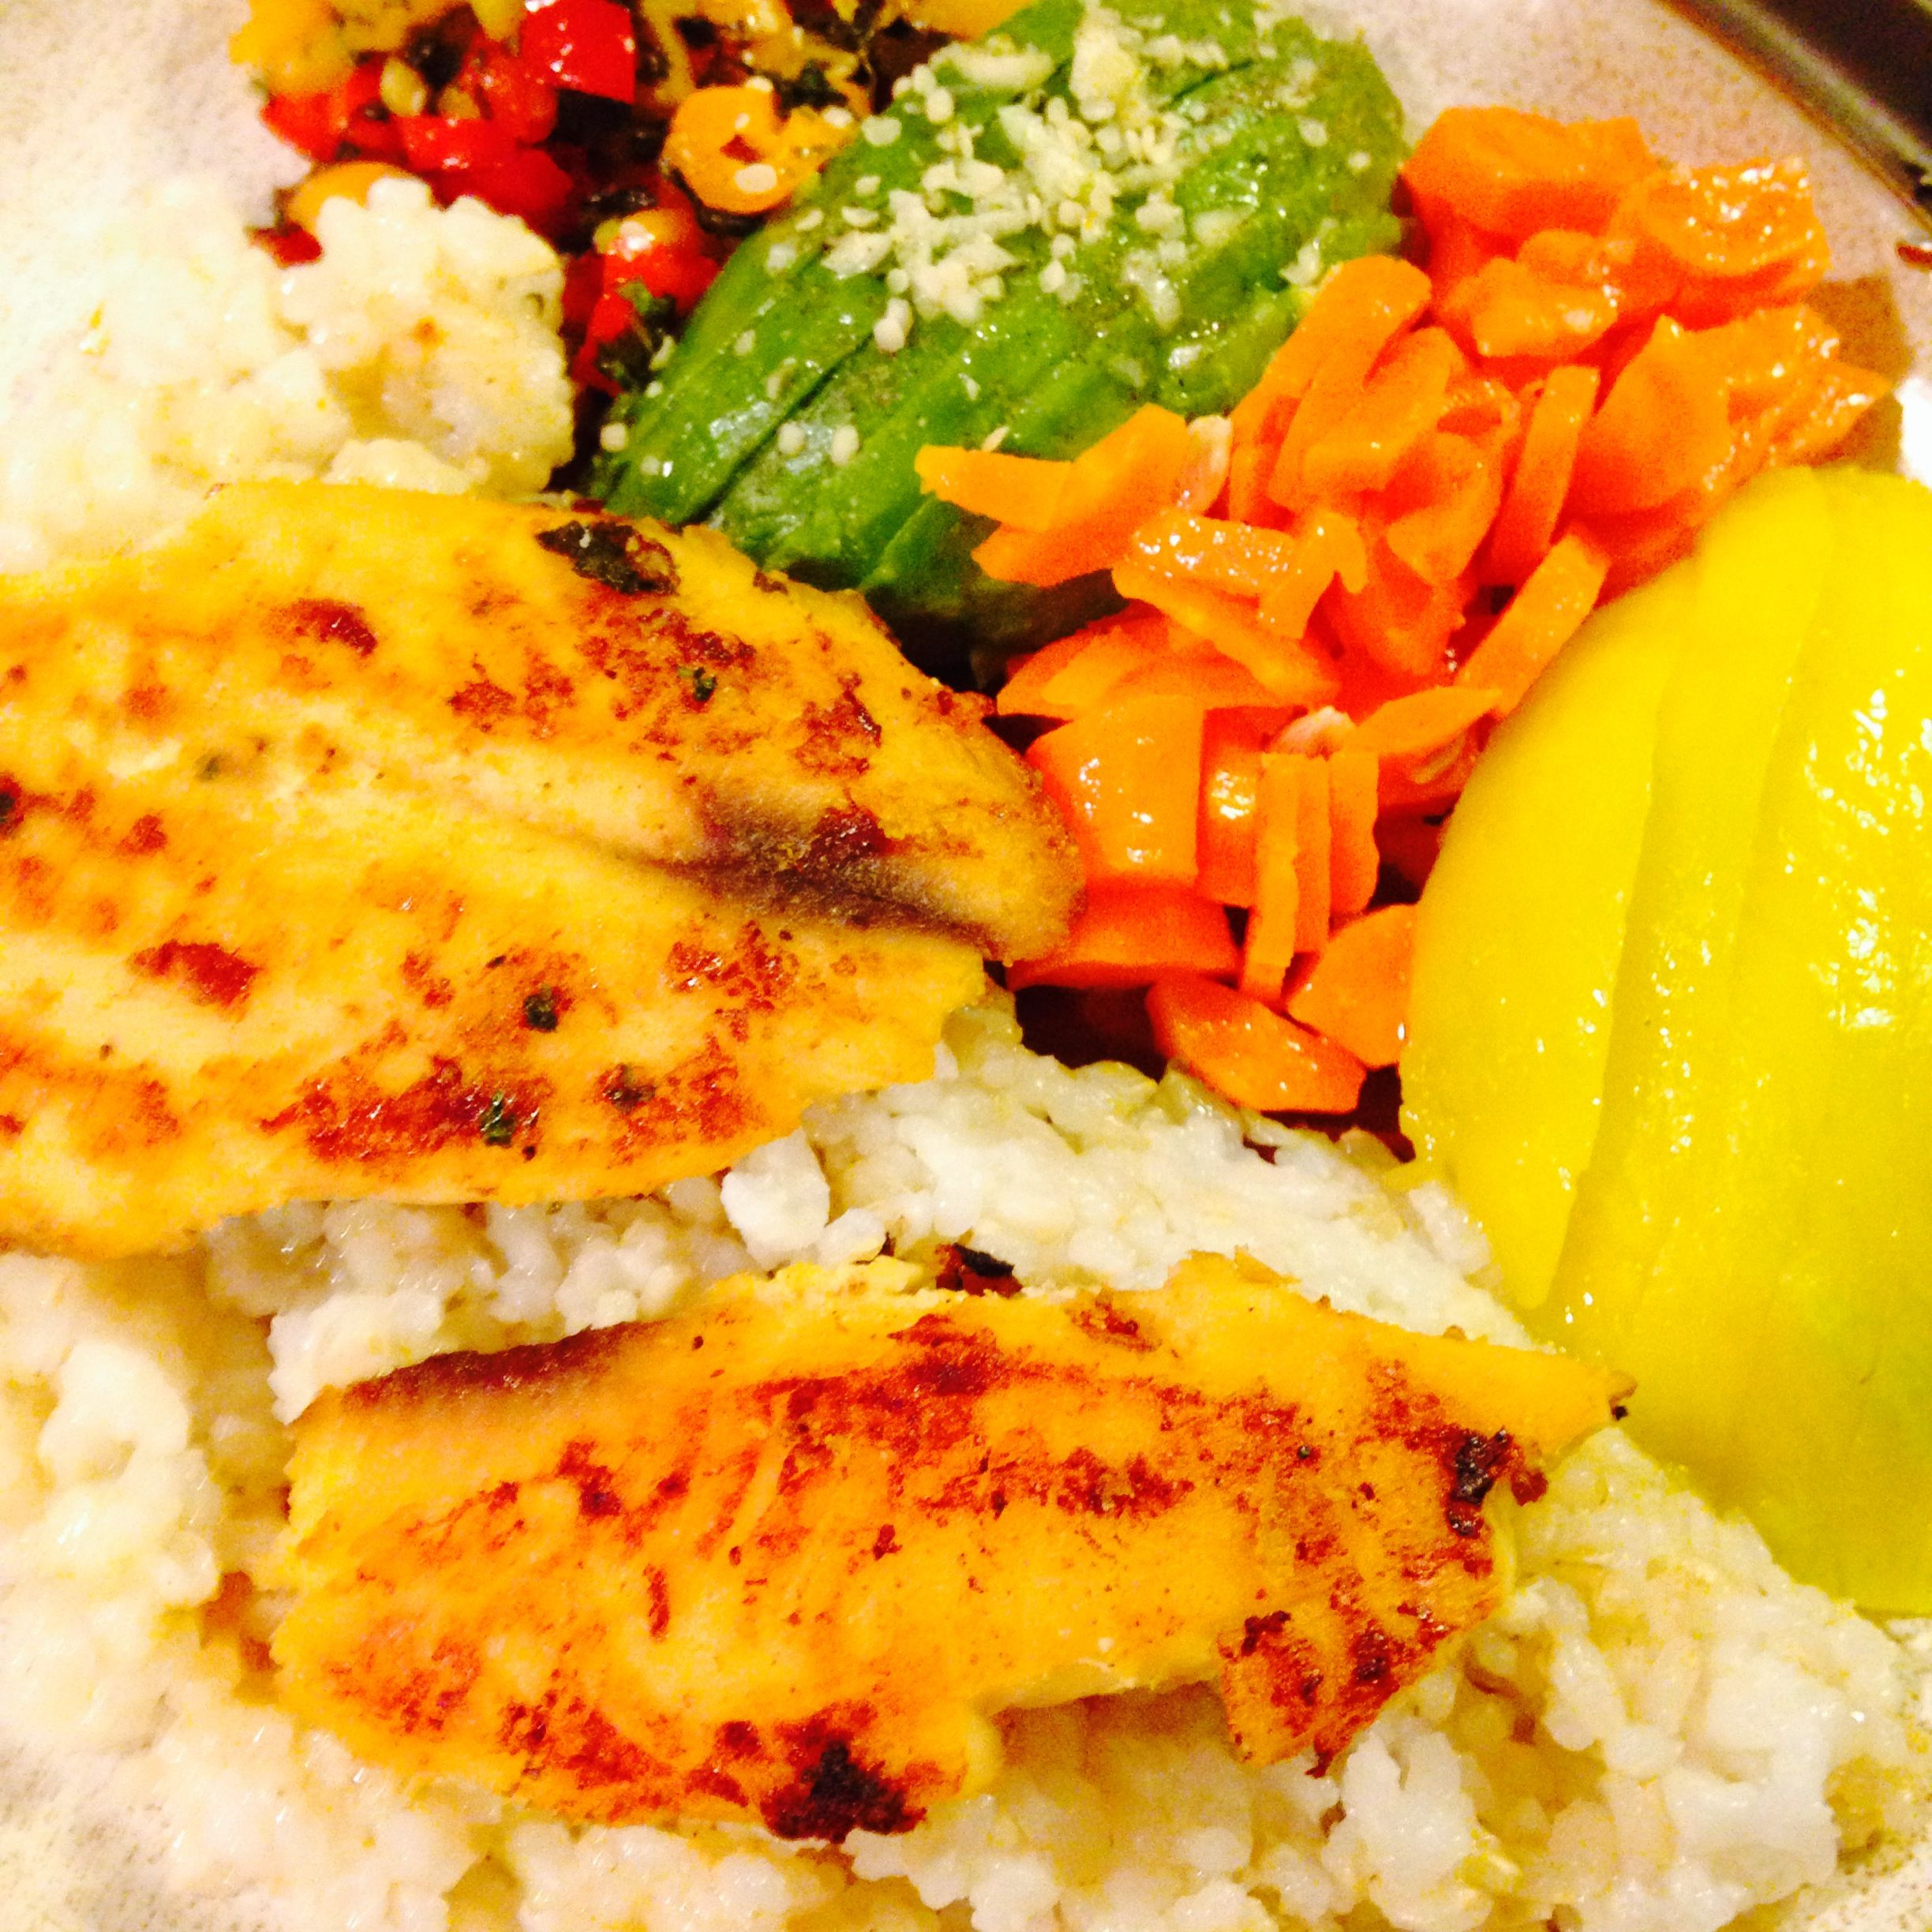 http://www.atlantichealinghemp.com/2014/06/06/pan-fried-fish-on-a-bed-of-rice-with-vegetables/